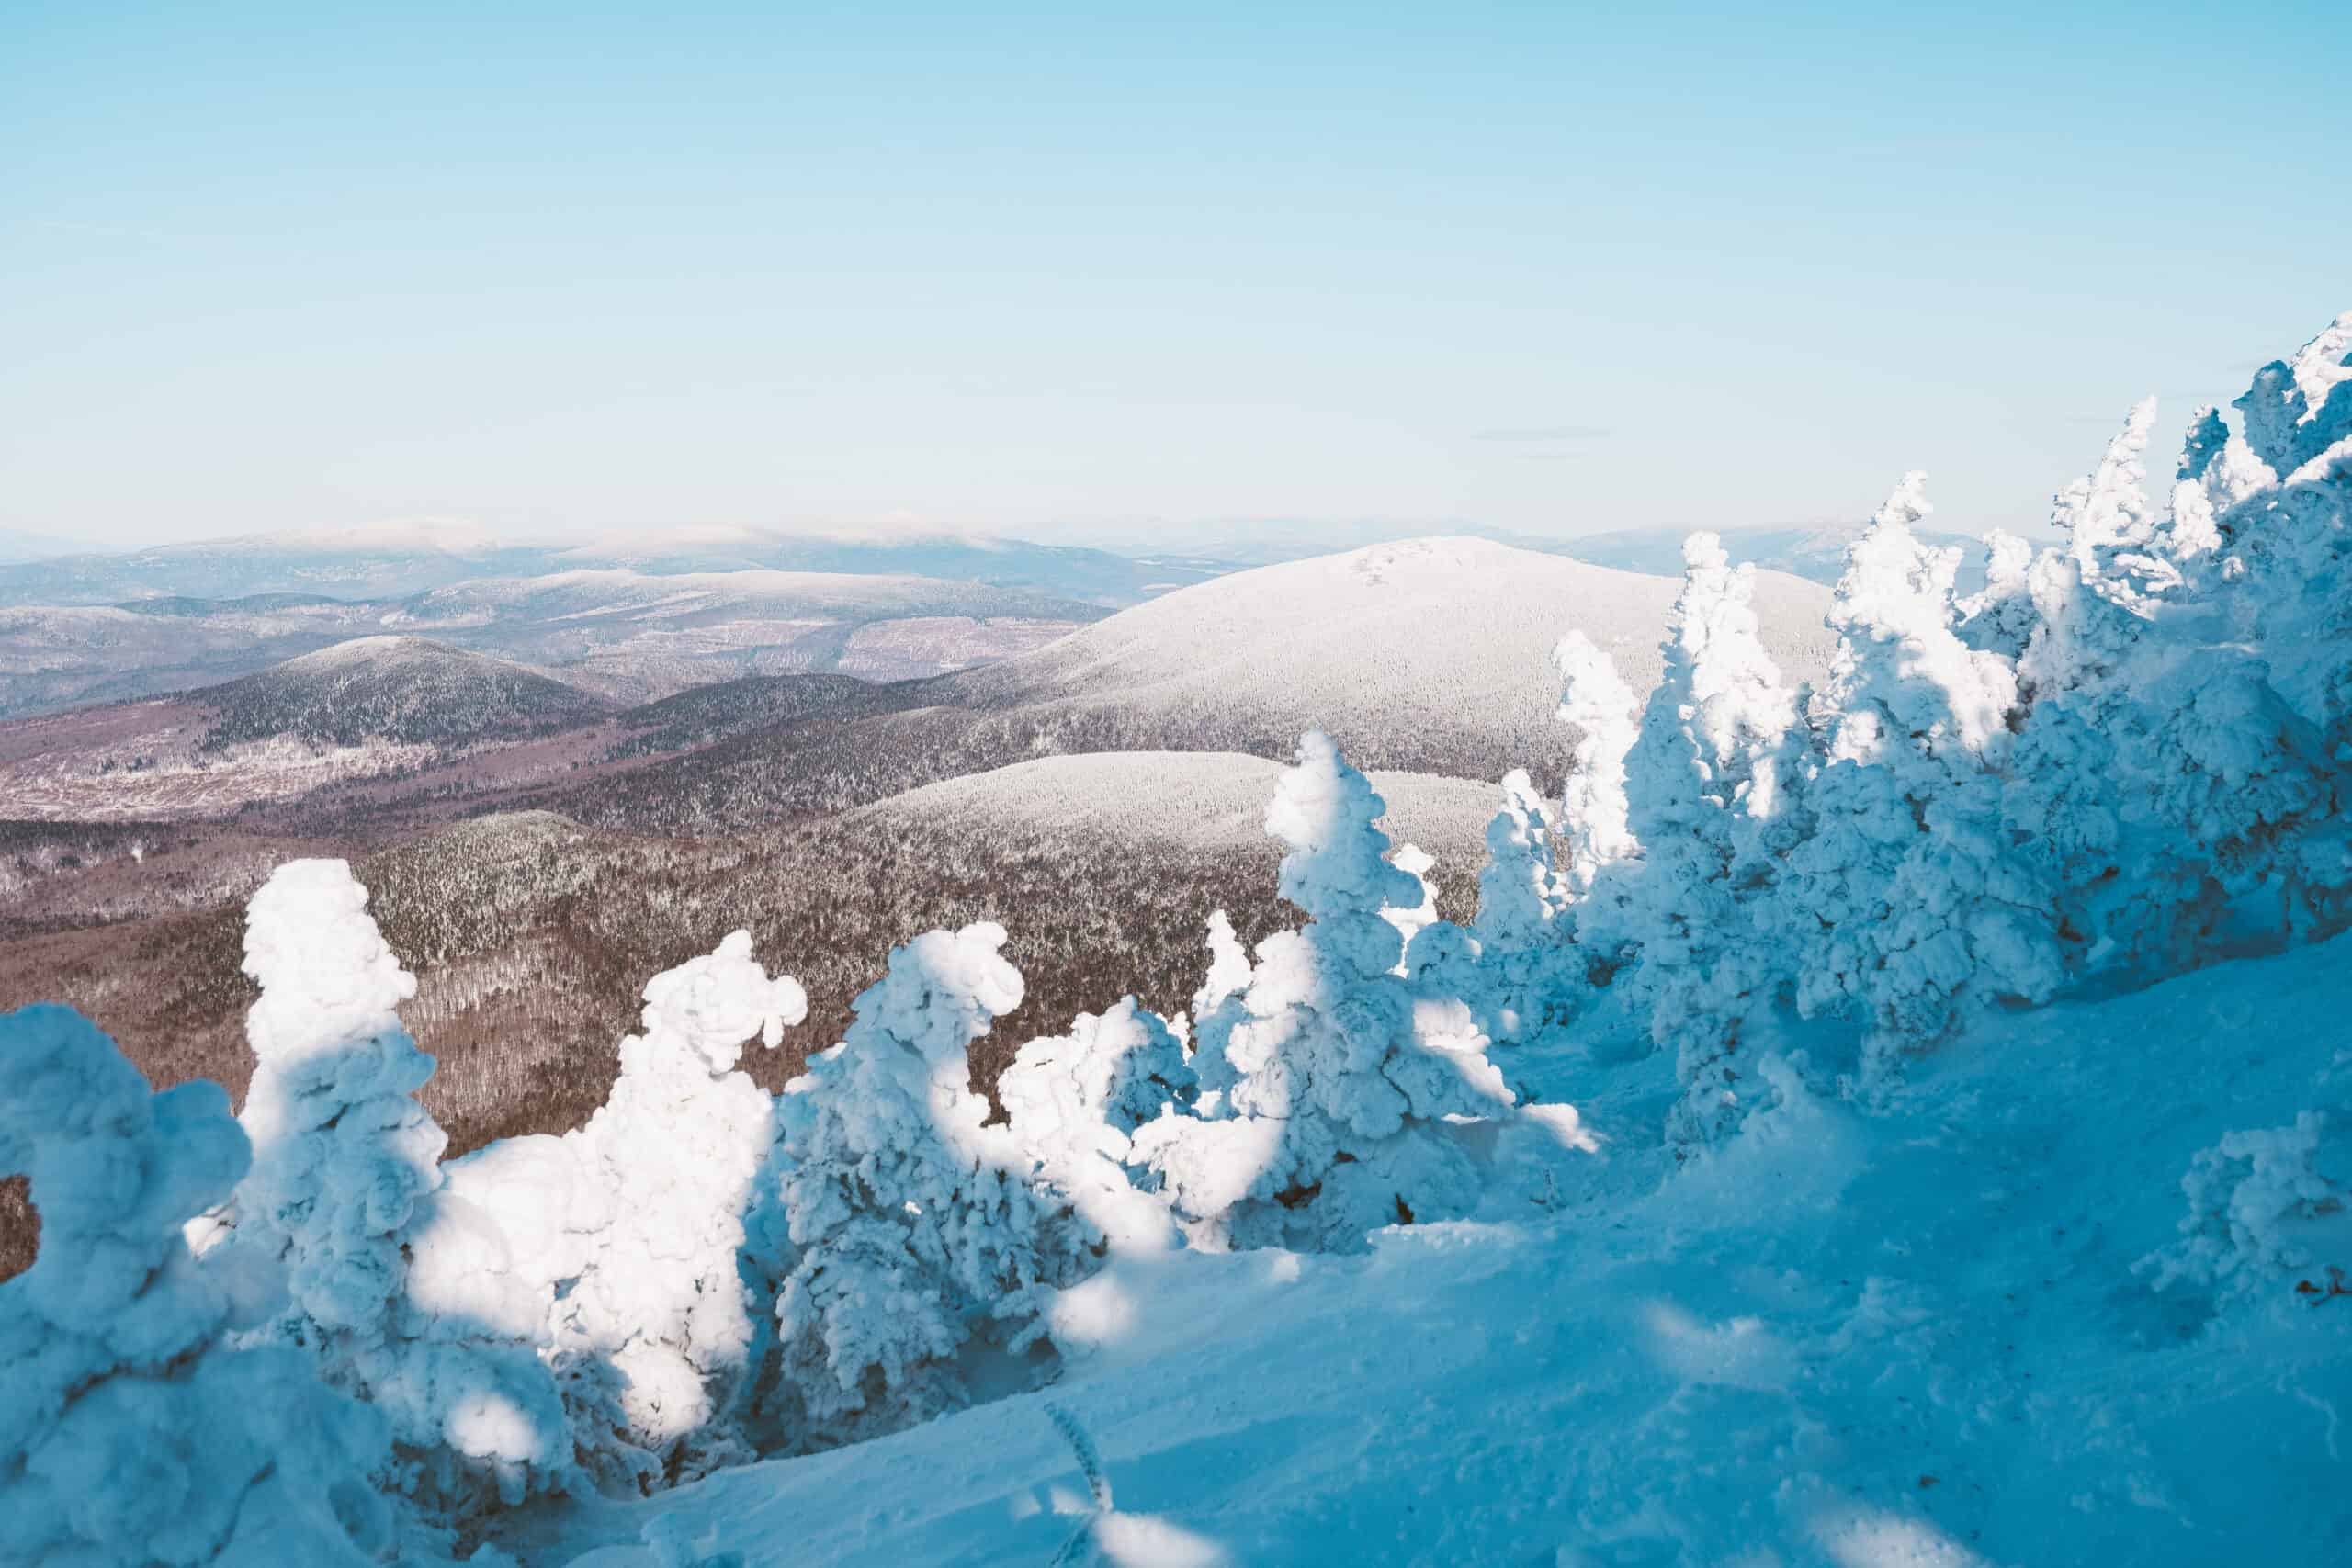 maine winter activities - image of snowy mountain with snow covered pine trees